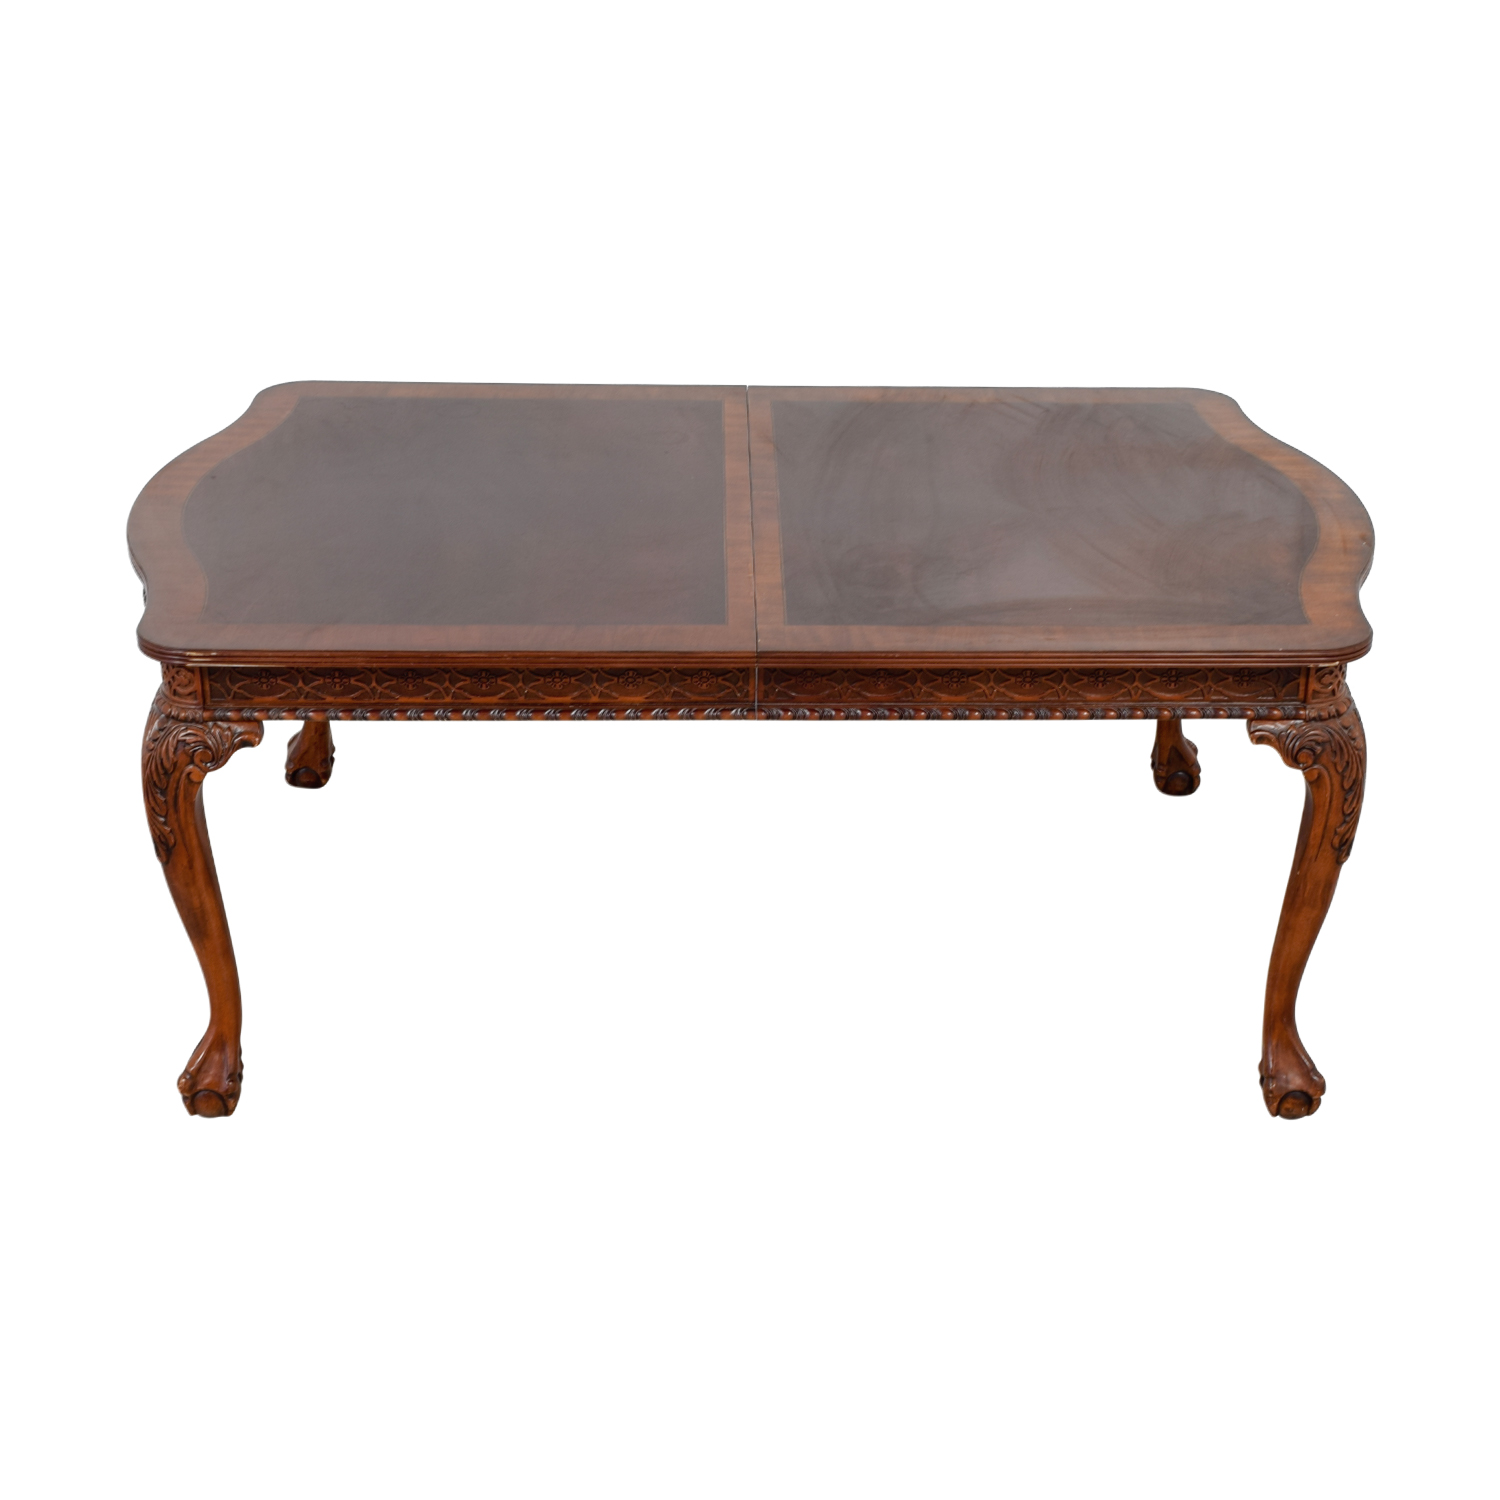 Carved Extendable Dining Table / Tables